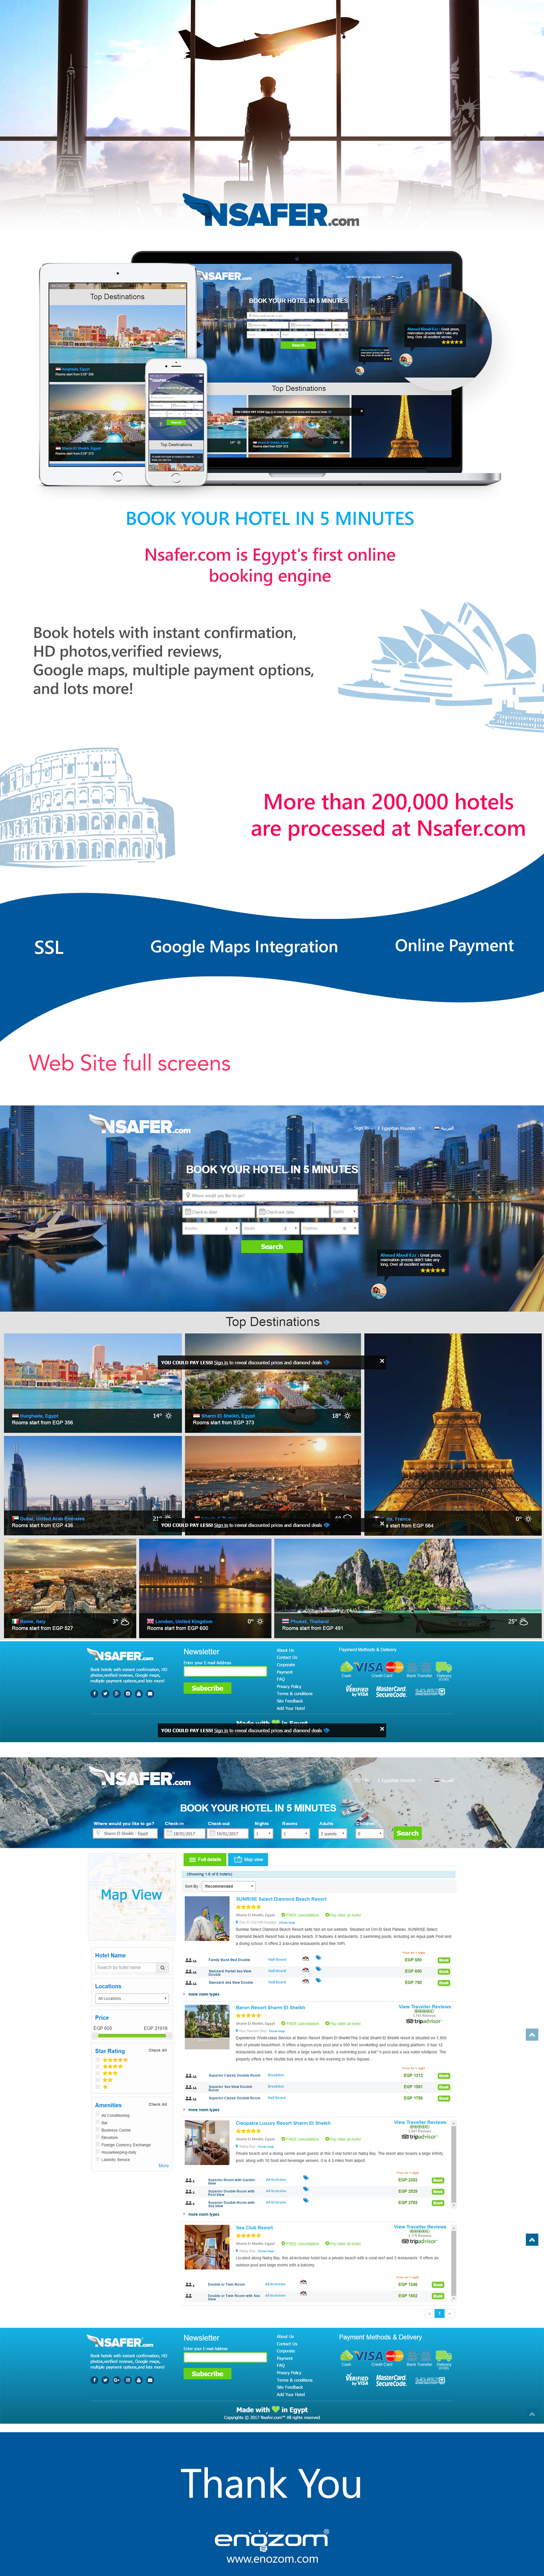 Nsafer Travel Booking Booking.com   Responsive css3 bootstrap Web Design